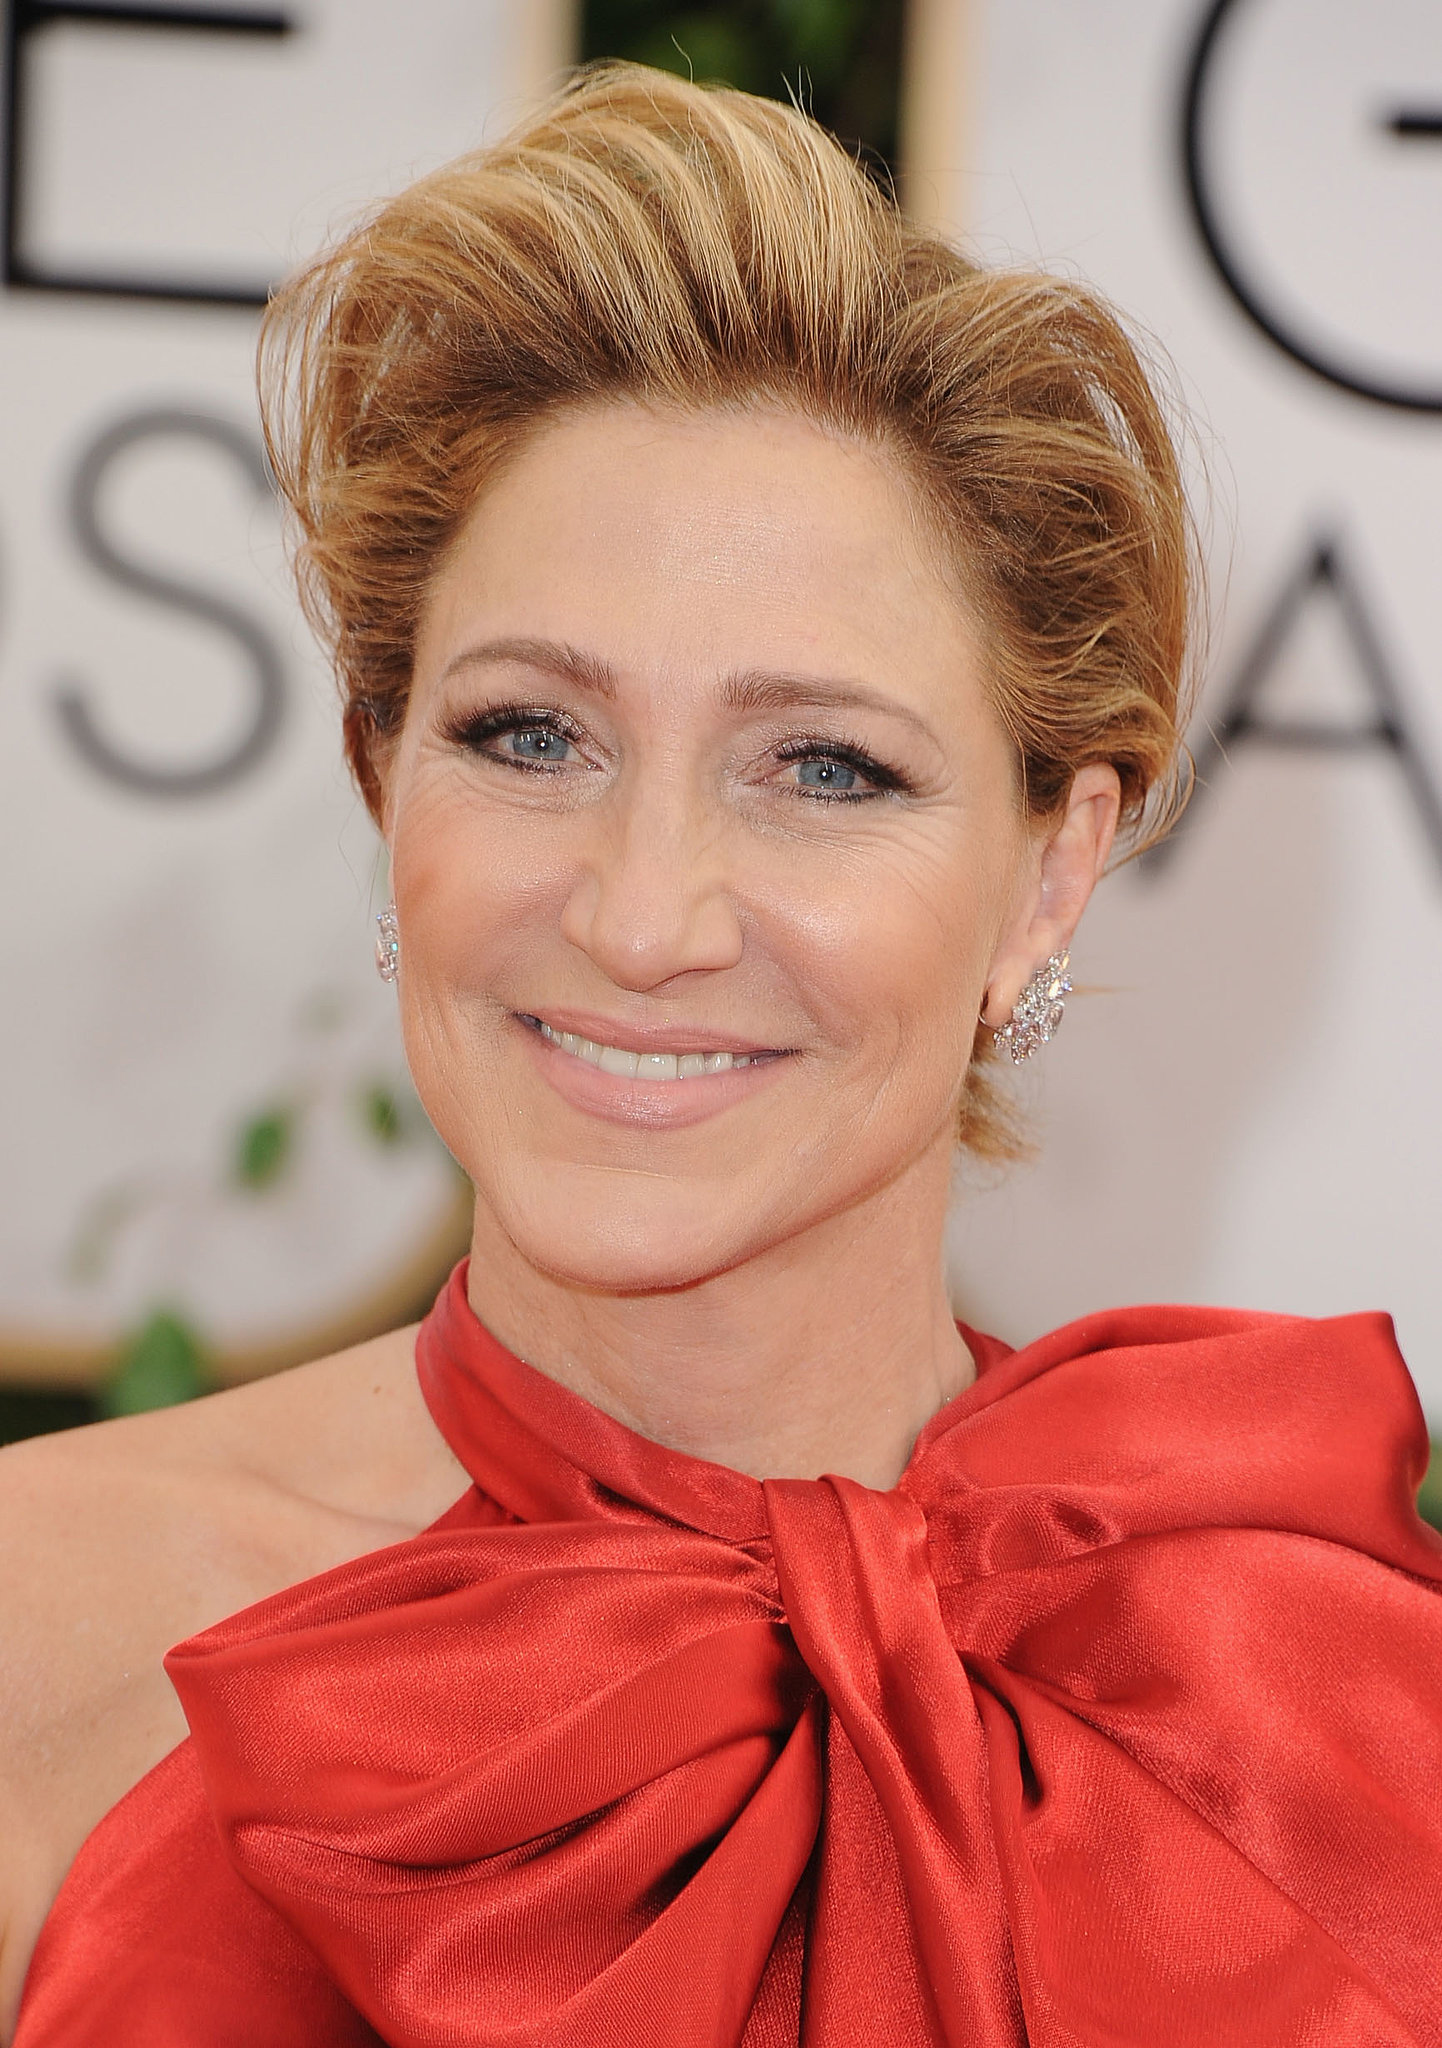 edie falco twitteredie falco emmy, edie falco instagram, edie falco 2016, edie falco wiki, edie falco net worth, edie falco apartment, edie falco, edie falco imdb, edie falco gay, edie falco orange is the new black, edie falco young, edie falco on james gandolfini, edie falco 2015, edie falco twitter, edie falco height, edie falco bio, edie falco plastic surgery 2013, edie falco married